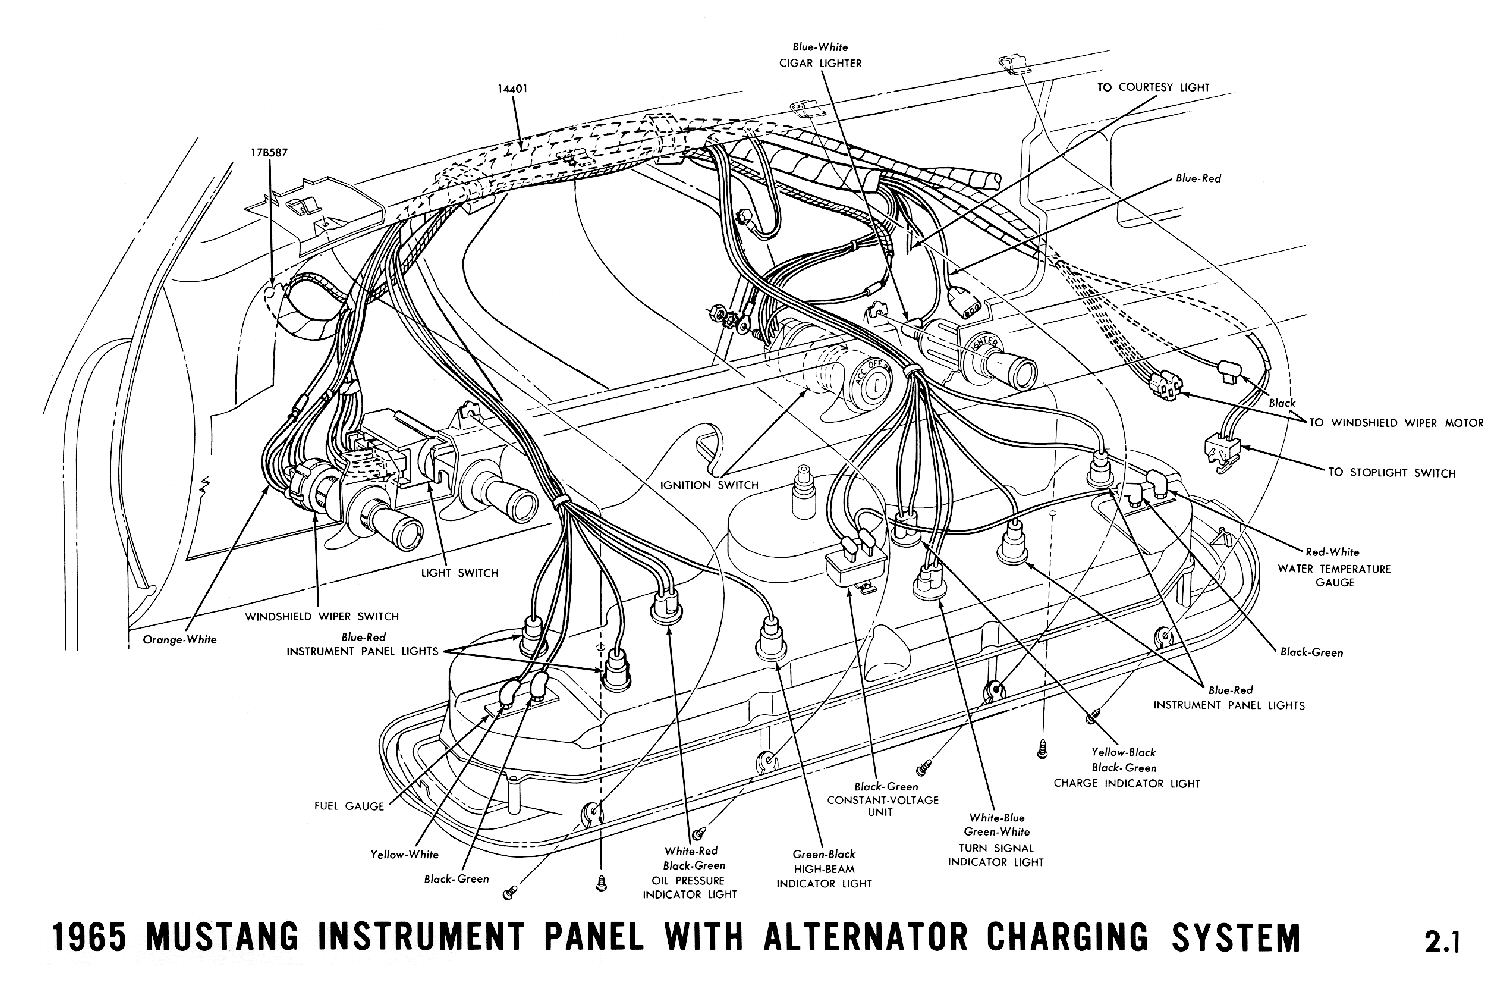 1965a 65 mustang dash wiring diagram 1965 ford mustang wiring diagram 2005 ford mustang instrument cluster wiring diagram at virtualis.co